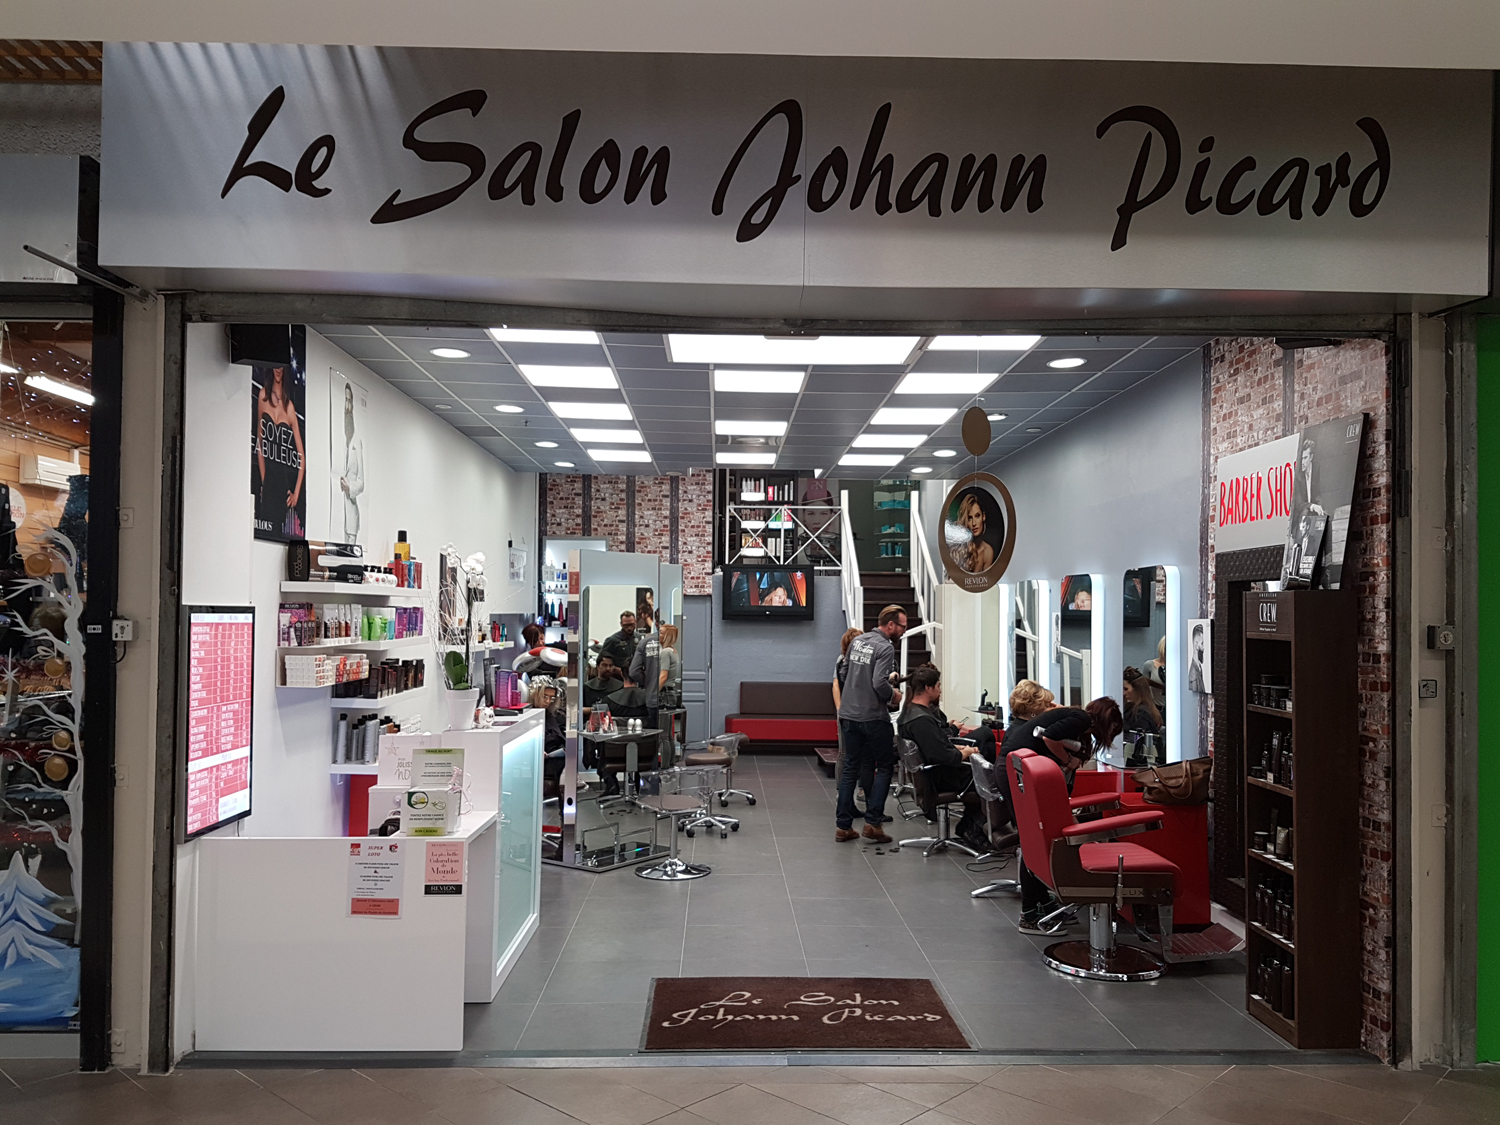 johann picard coiffeur gardanne salon de coiffure simiane. Black Bedroom Furniture Sets. Home Design Ideas